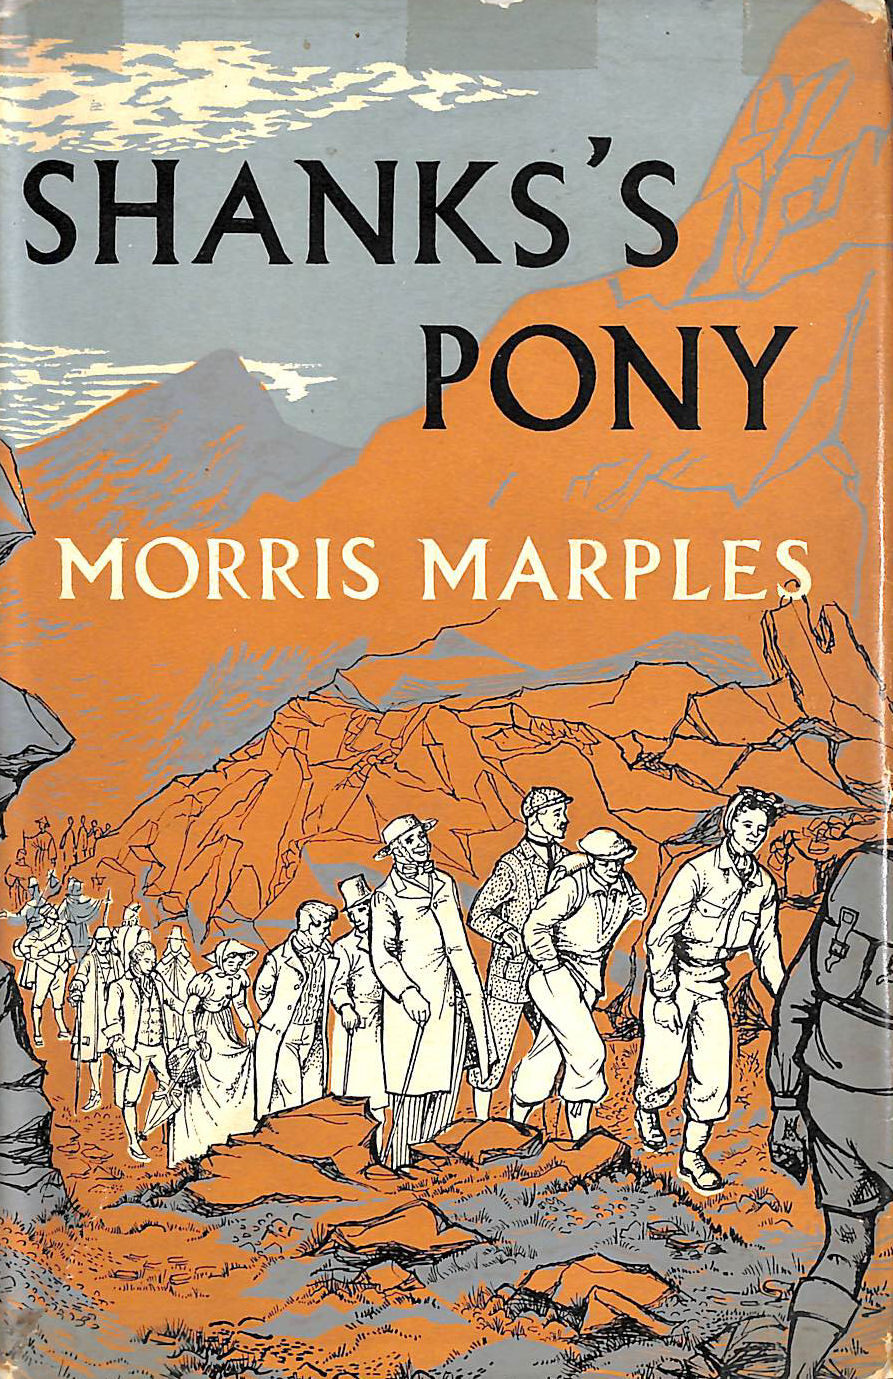 Image for Shanks's pony: A study of walking